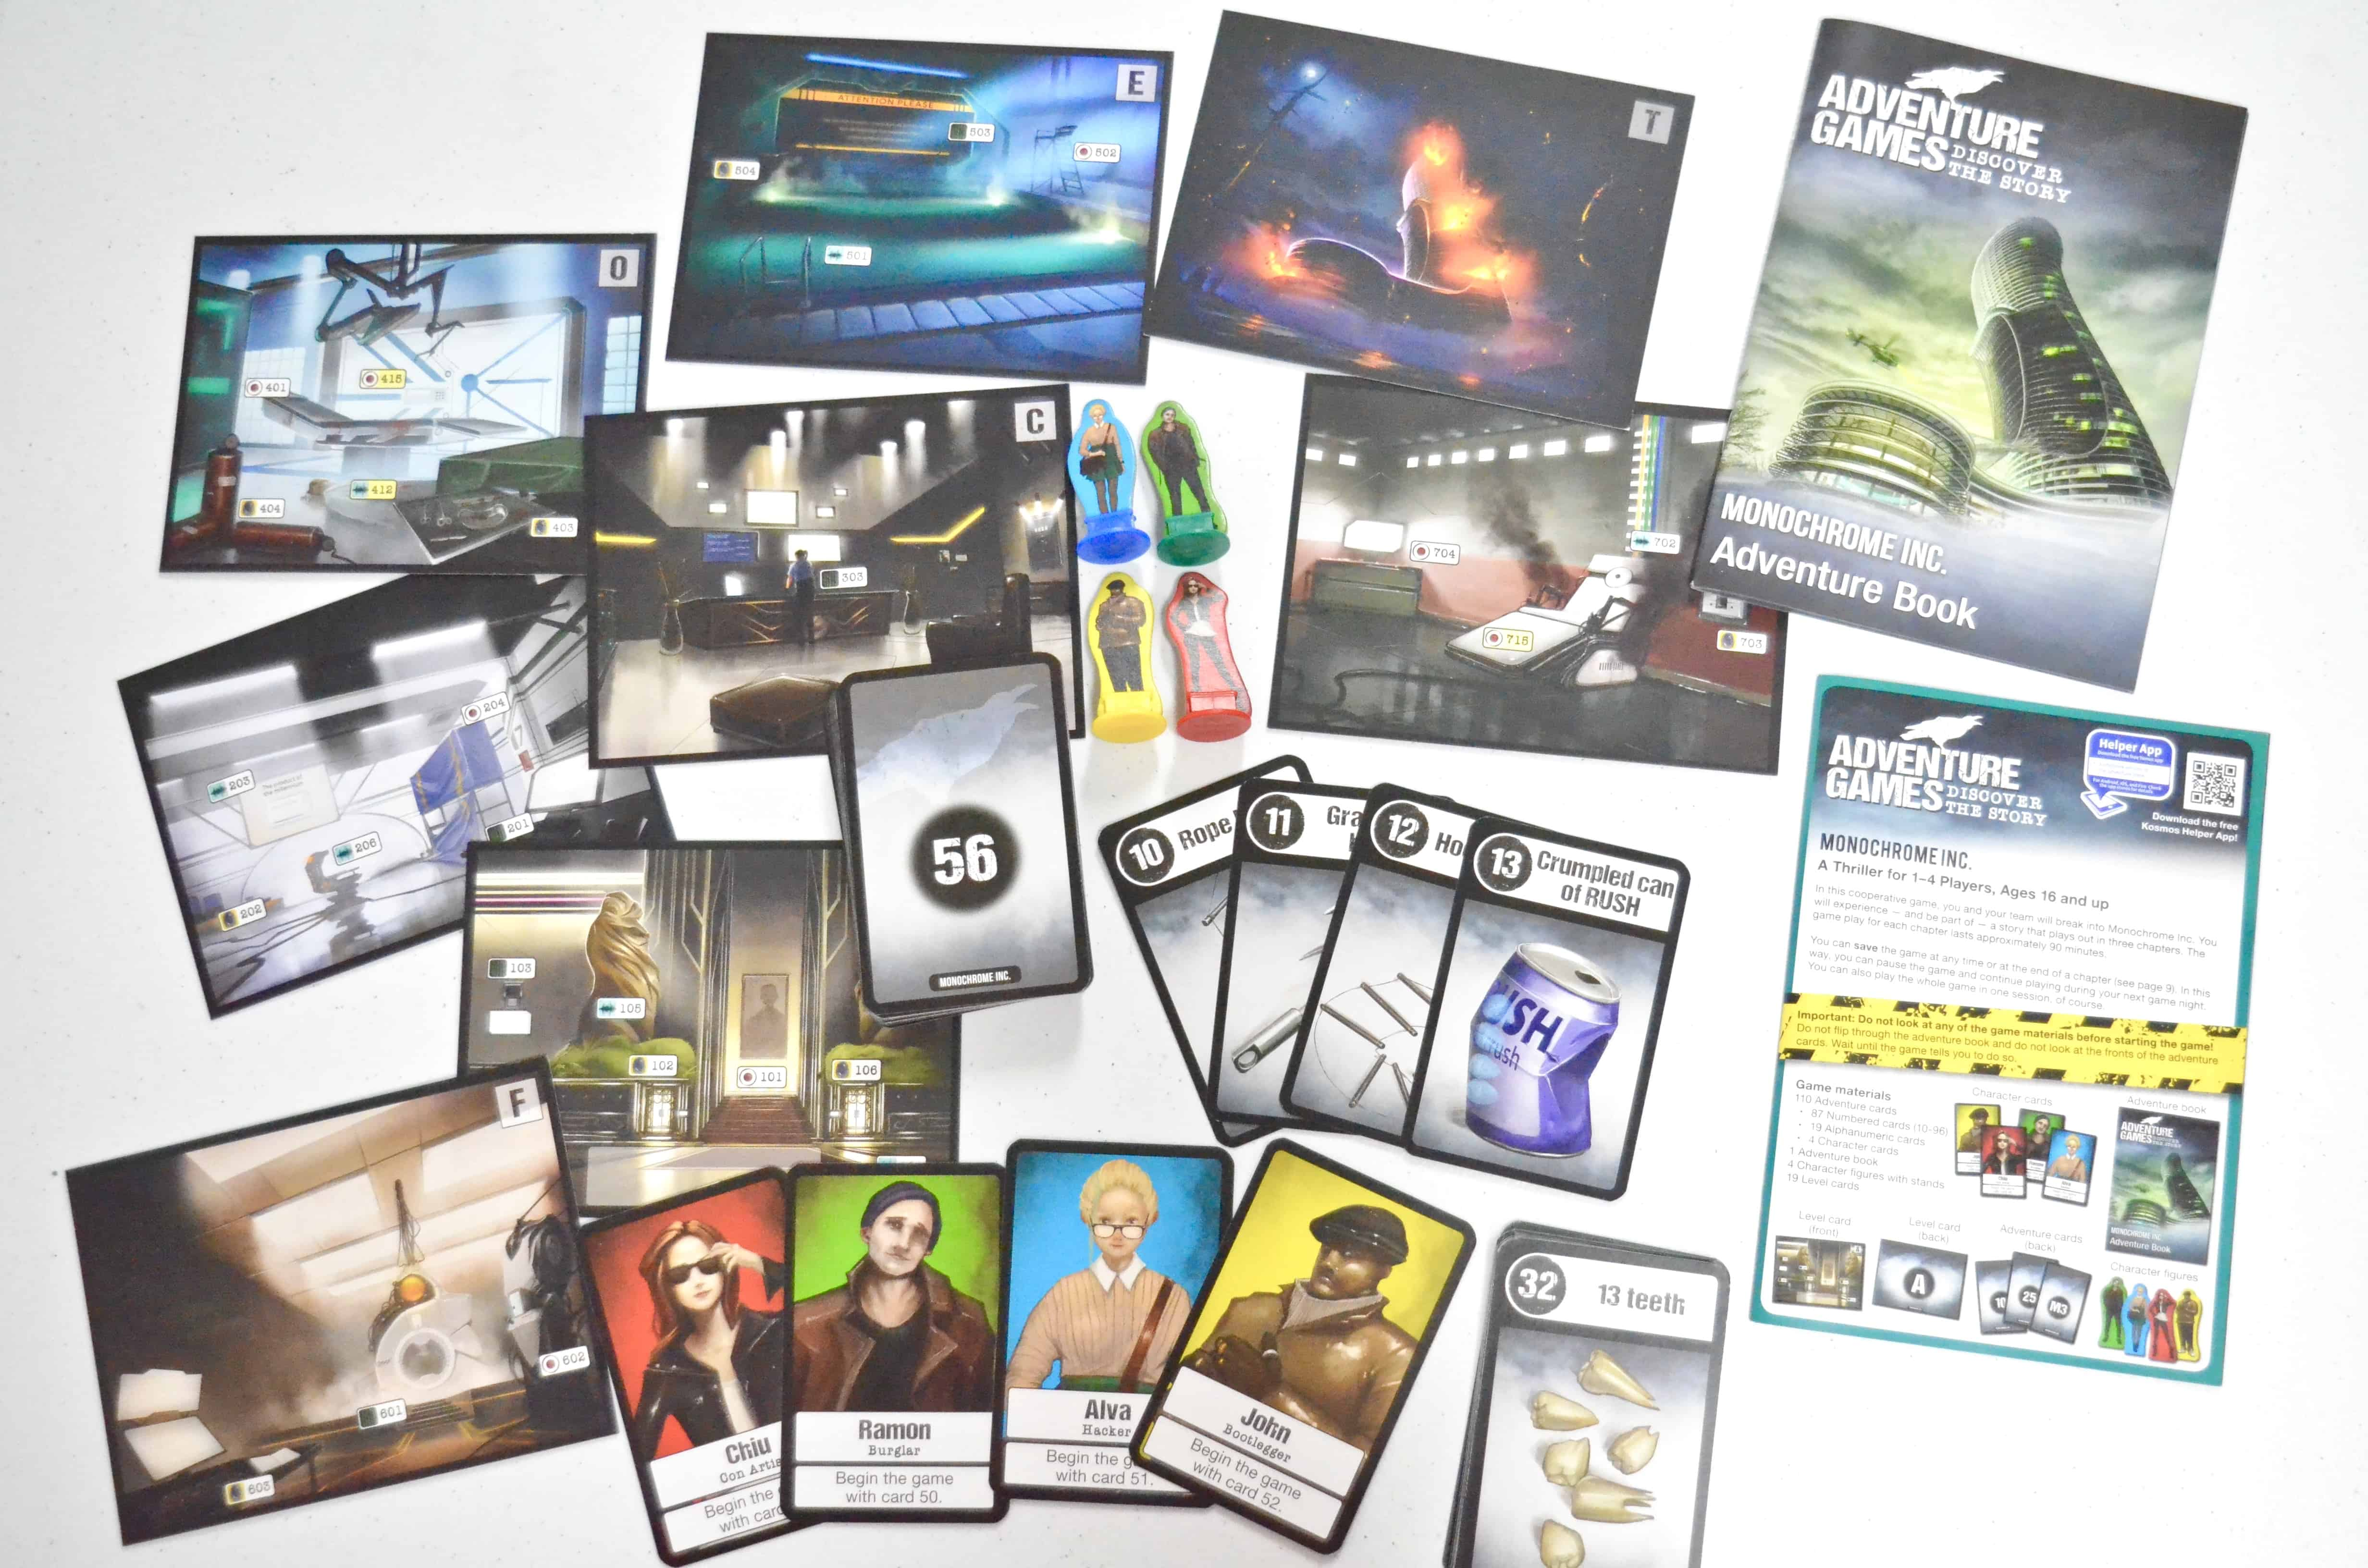 Adventure Games Monochrome cards by KOSMOS